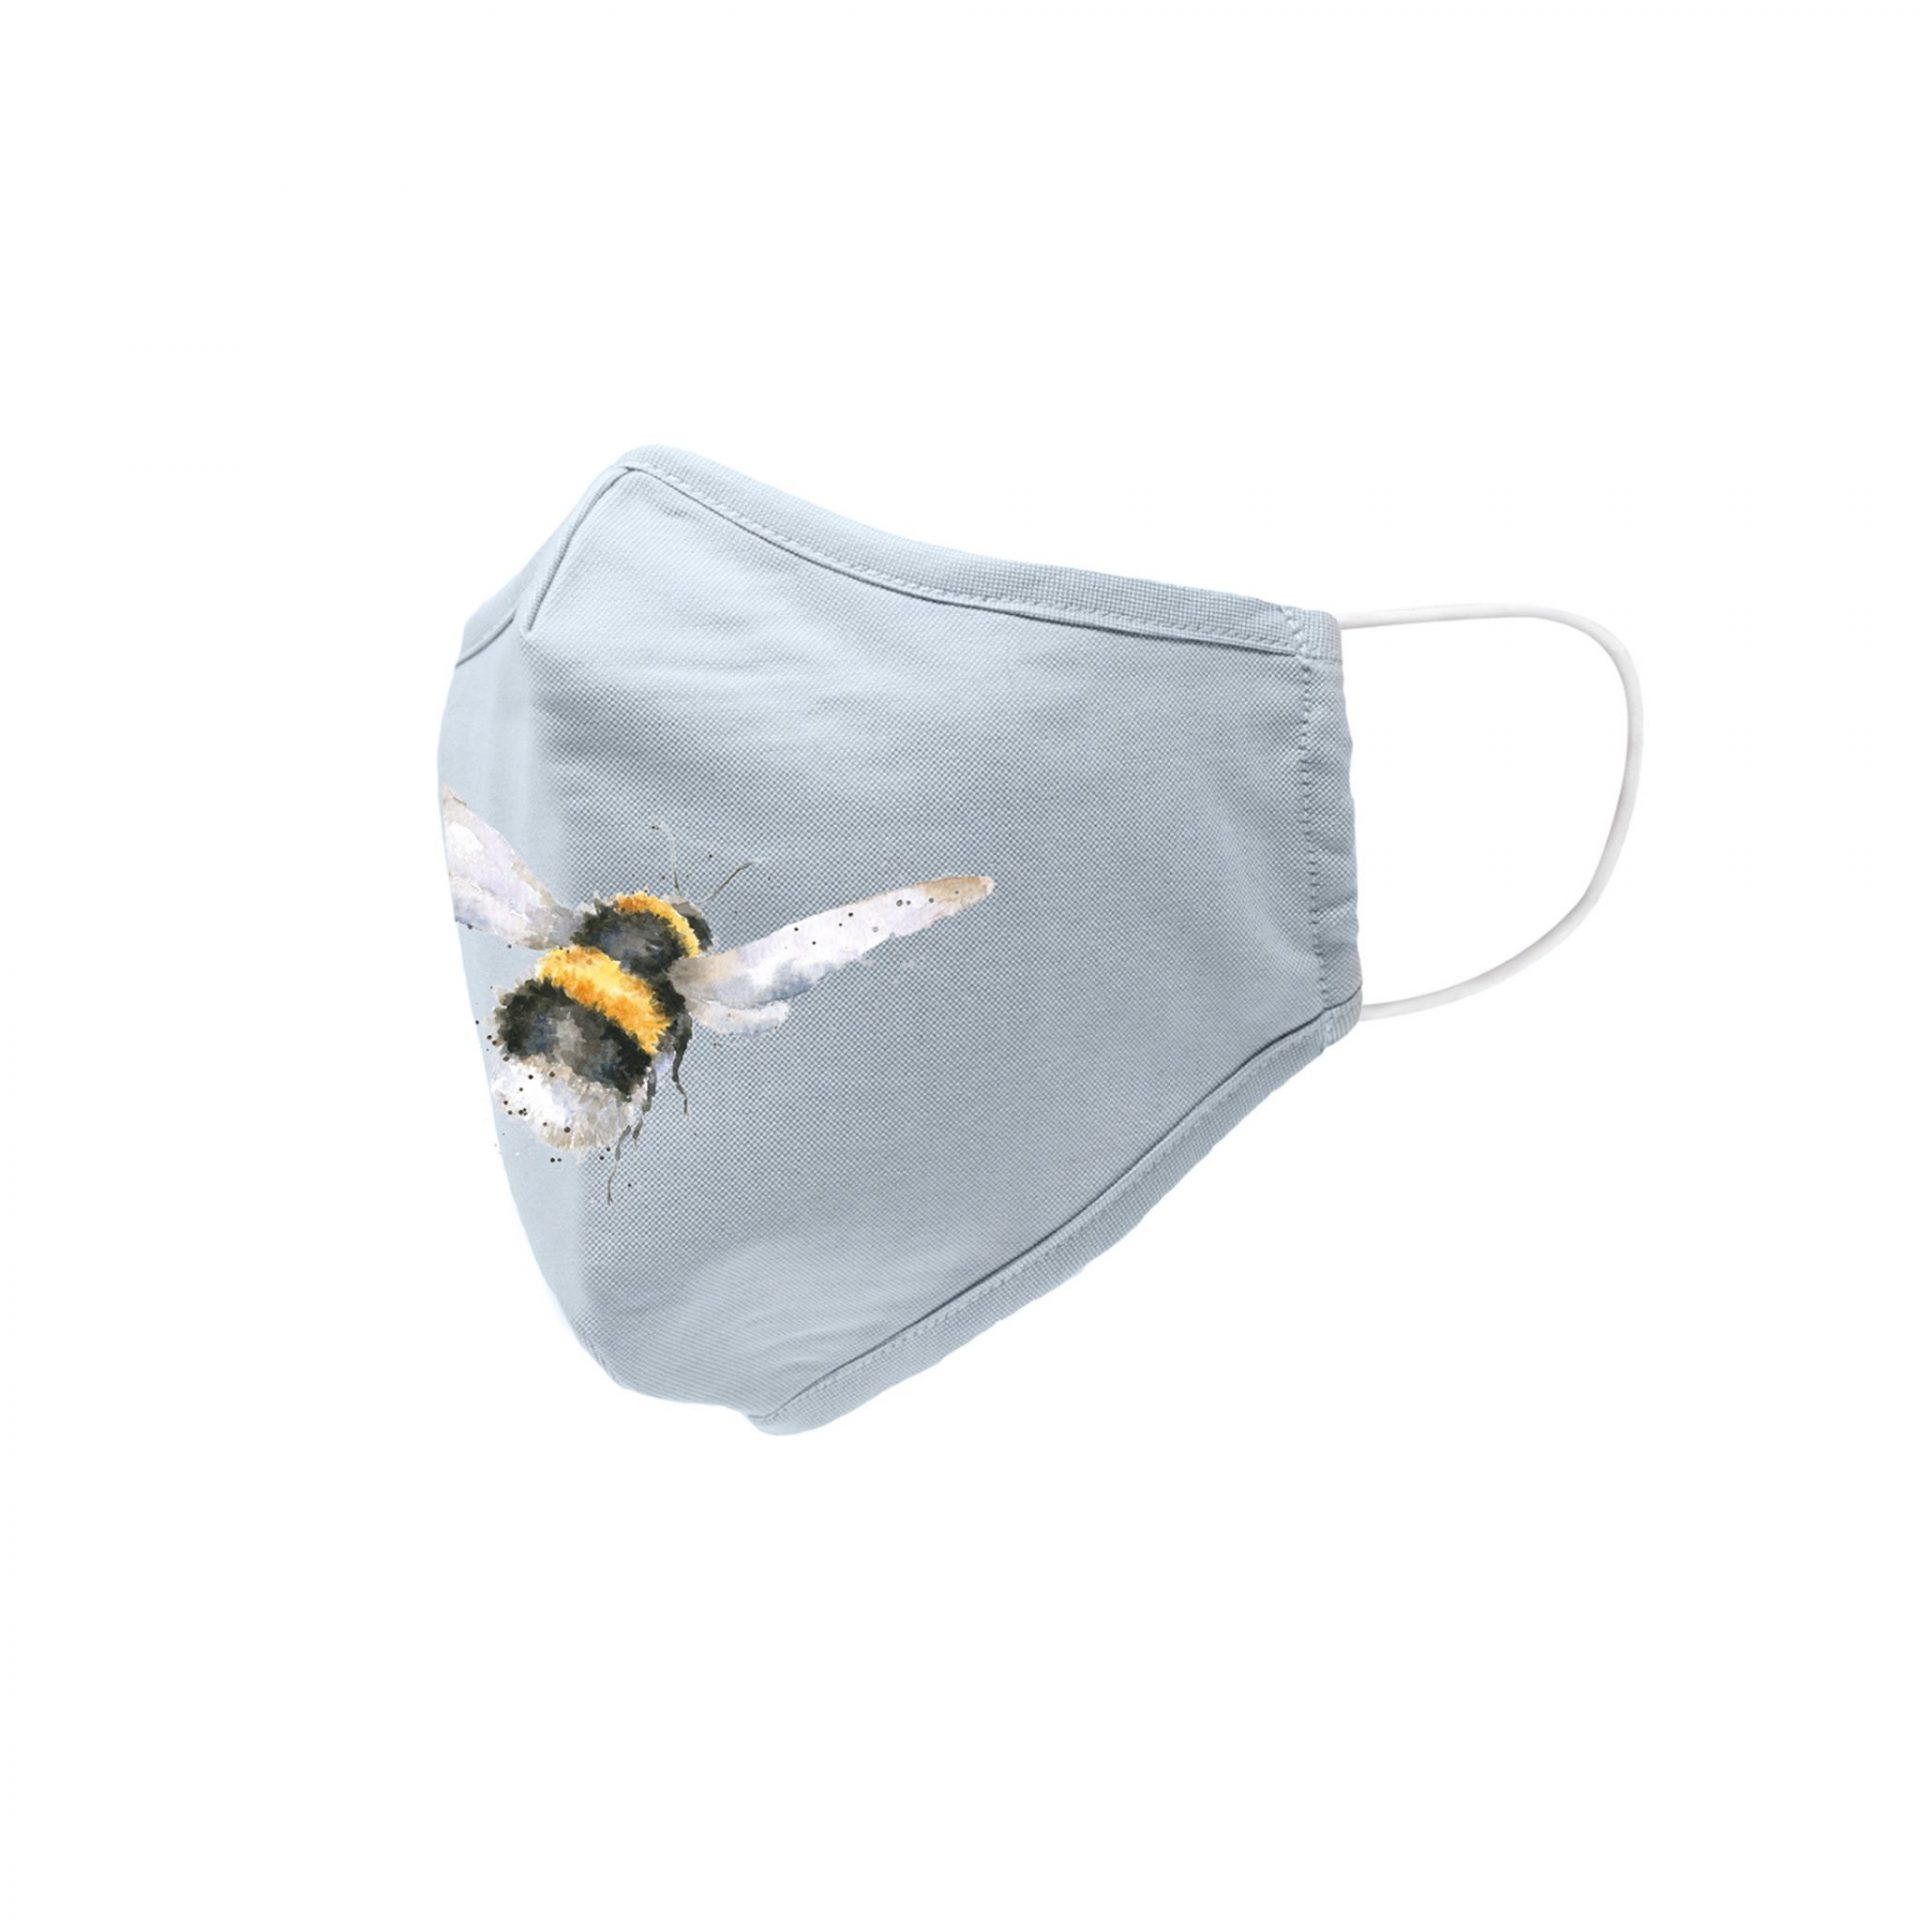 new-wrendale-design-face-mask-flight-of-the-bumble-bee-face-covering-100-cotto-17772-p